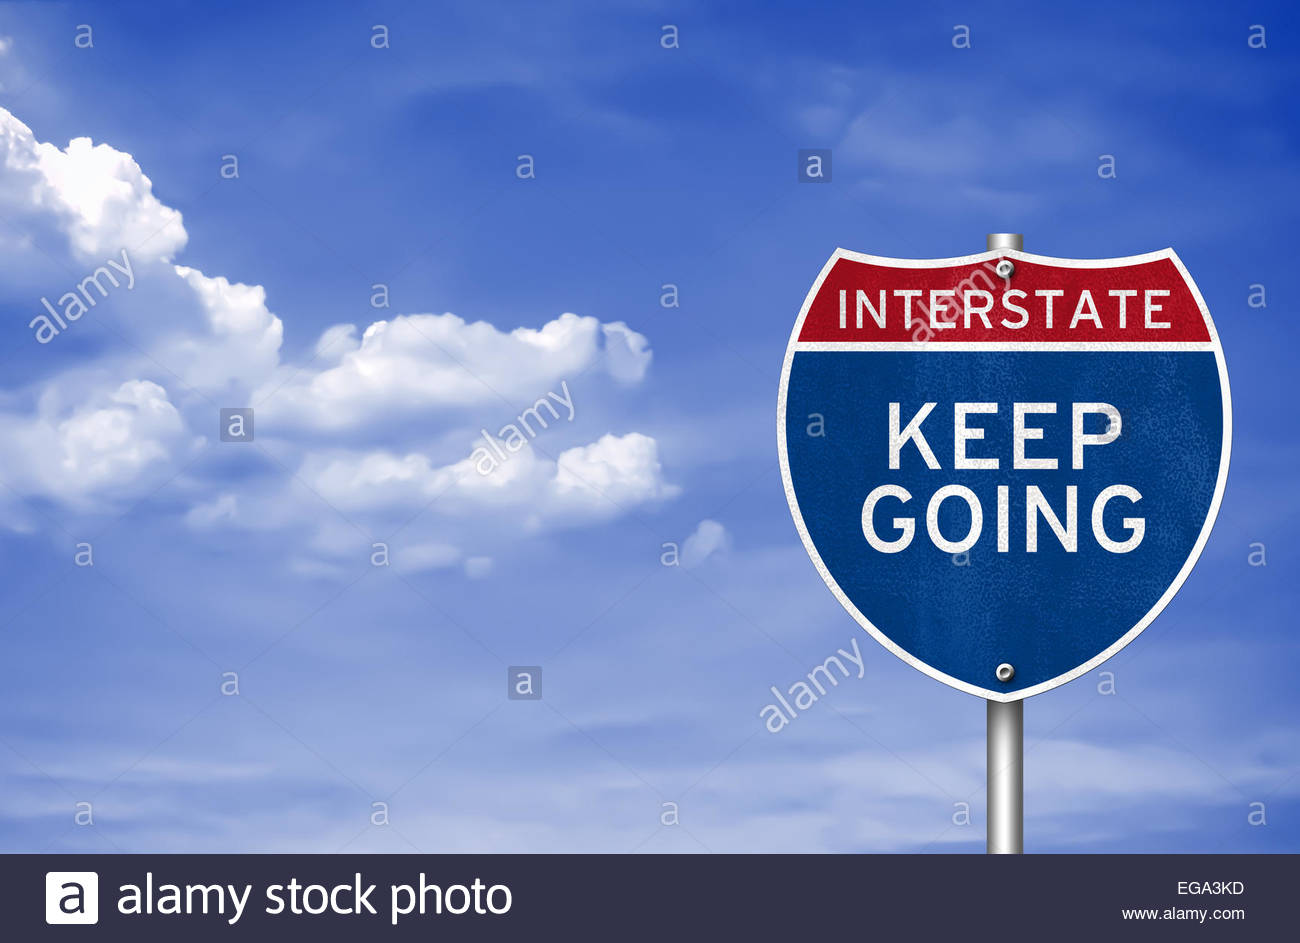 Keep going road sign concept - Stock Image